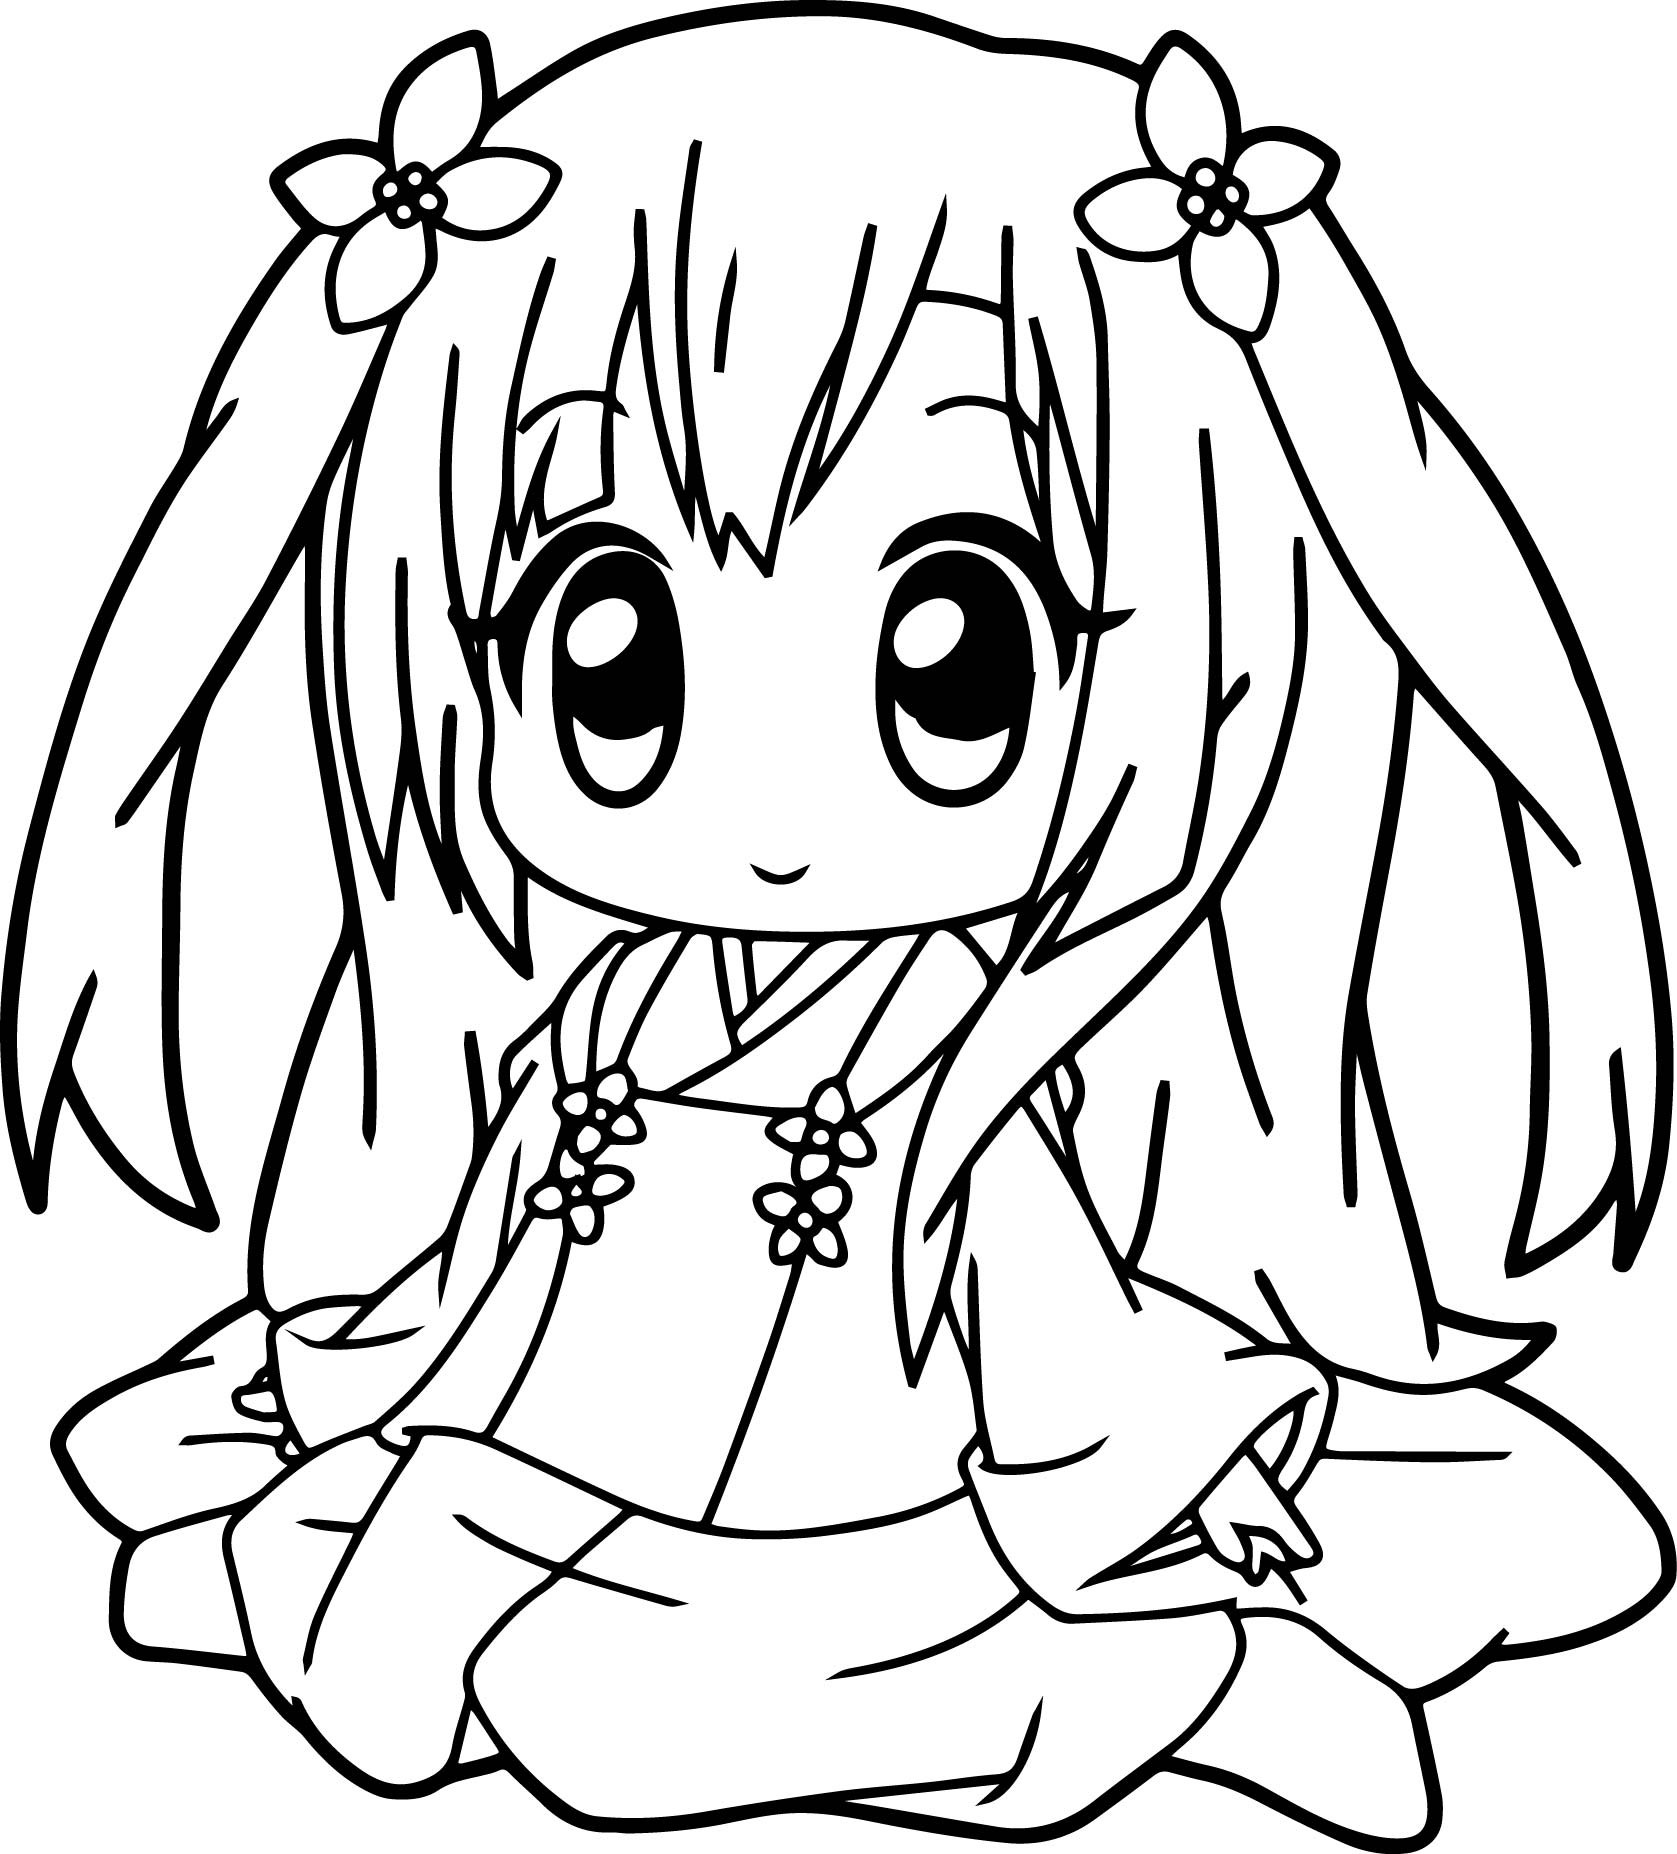 Cute Easy Coloring Pages For Girls  Anime Girl Coloring Pages coloringsuite